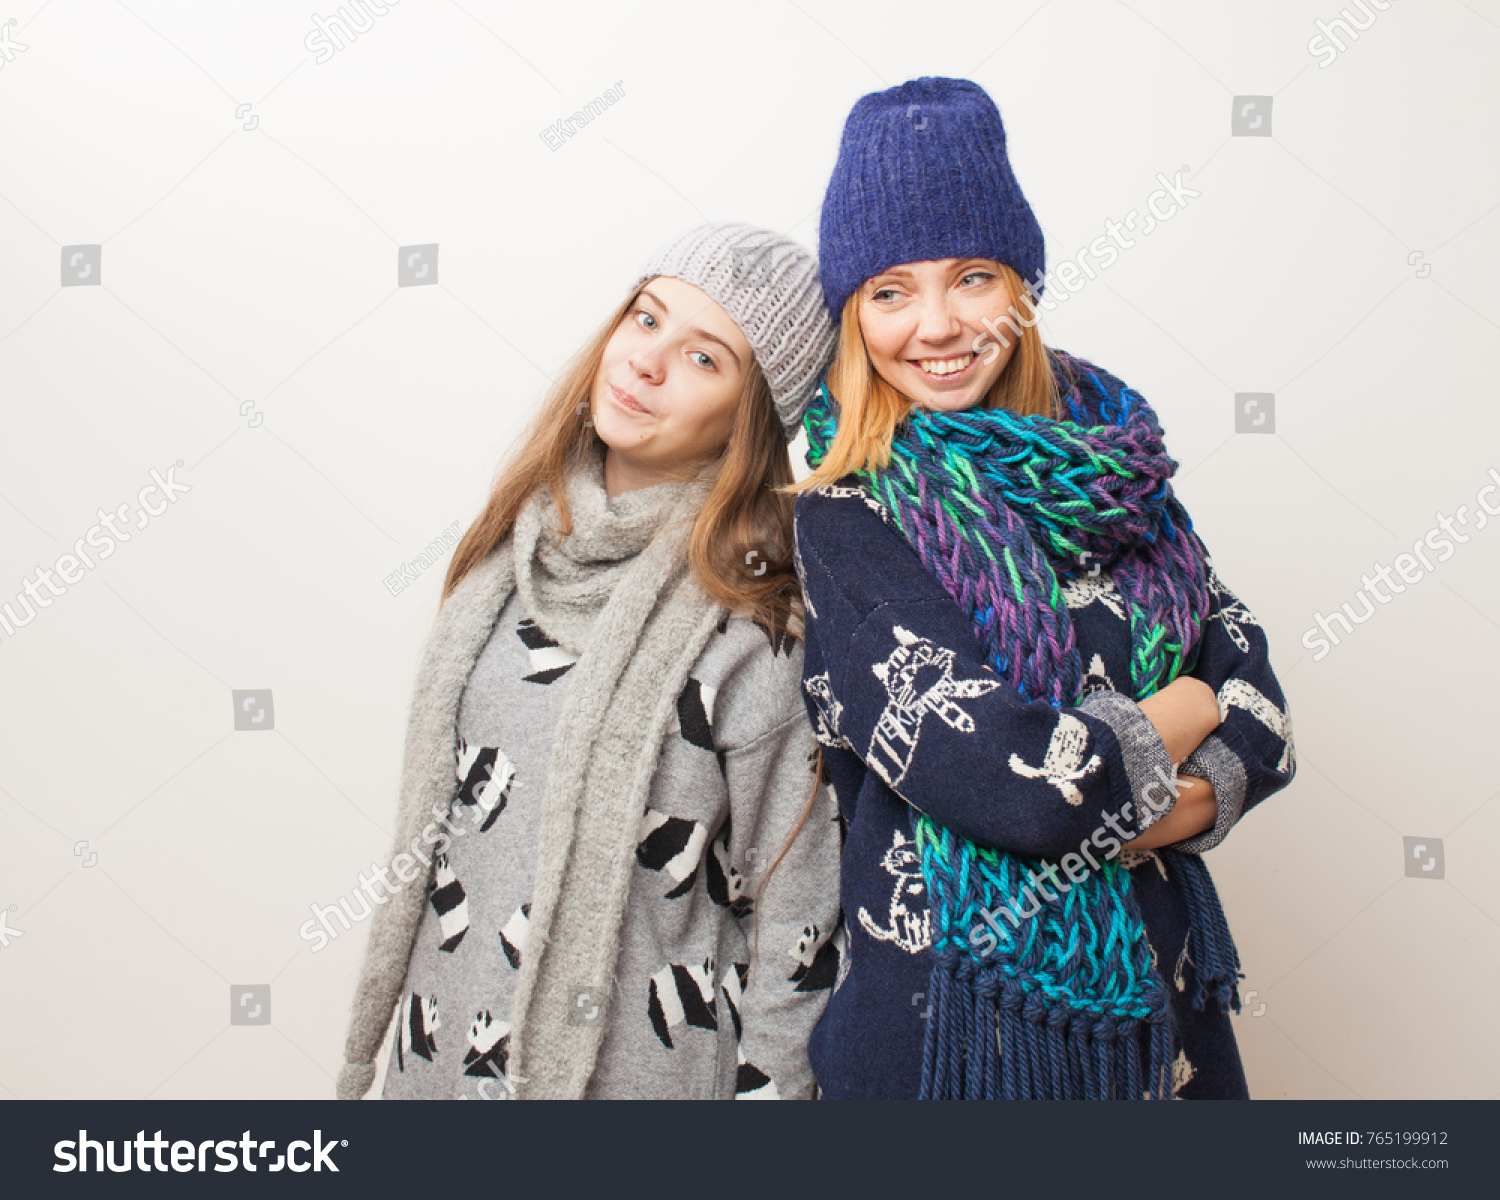 Mom and teen daughter in scarves and hats on a white background. Two girls  enjoy